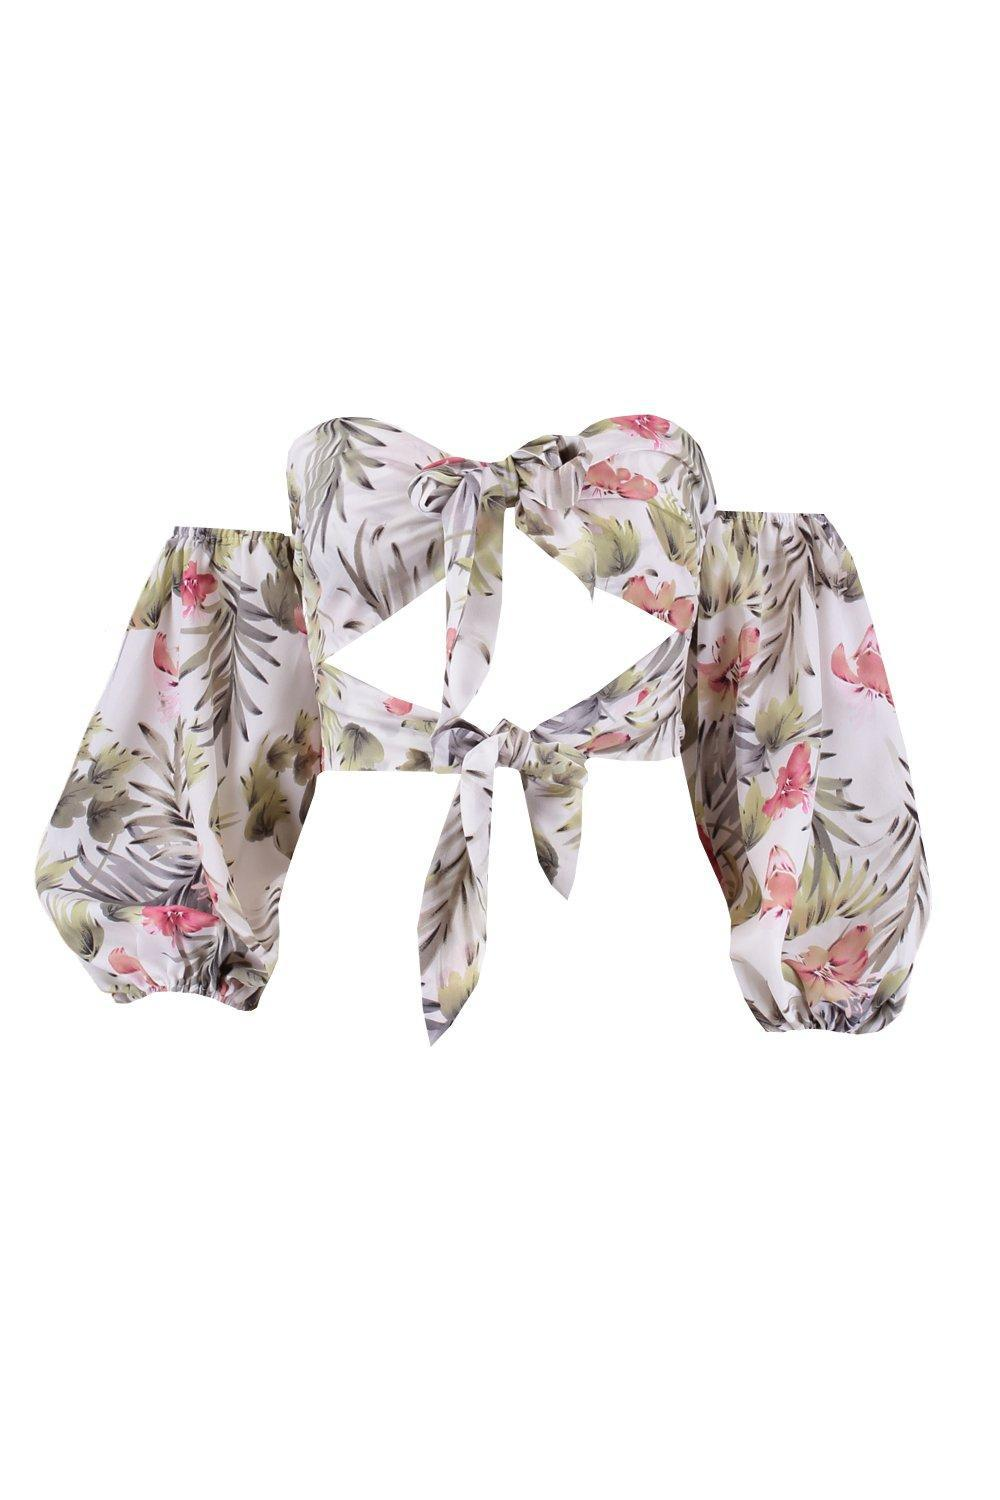 Boohoo Synthetic Tie Front Cut Out Palm Print Bralet in White